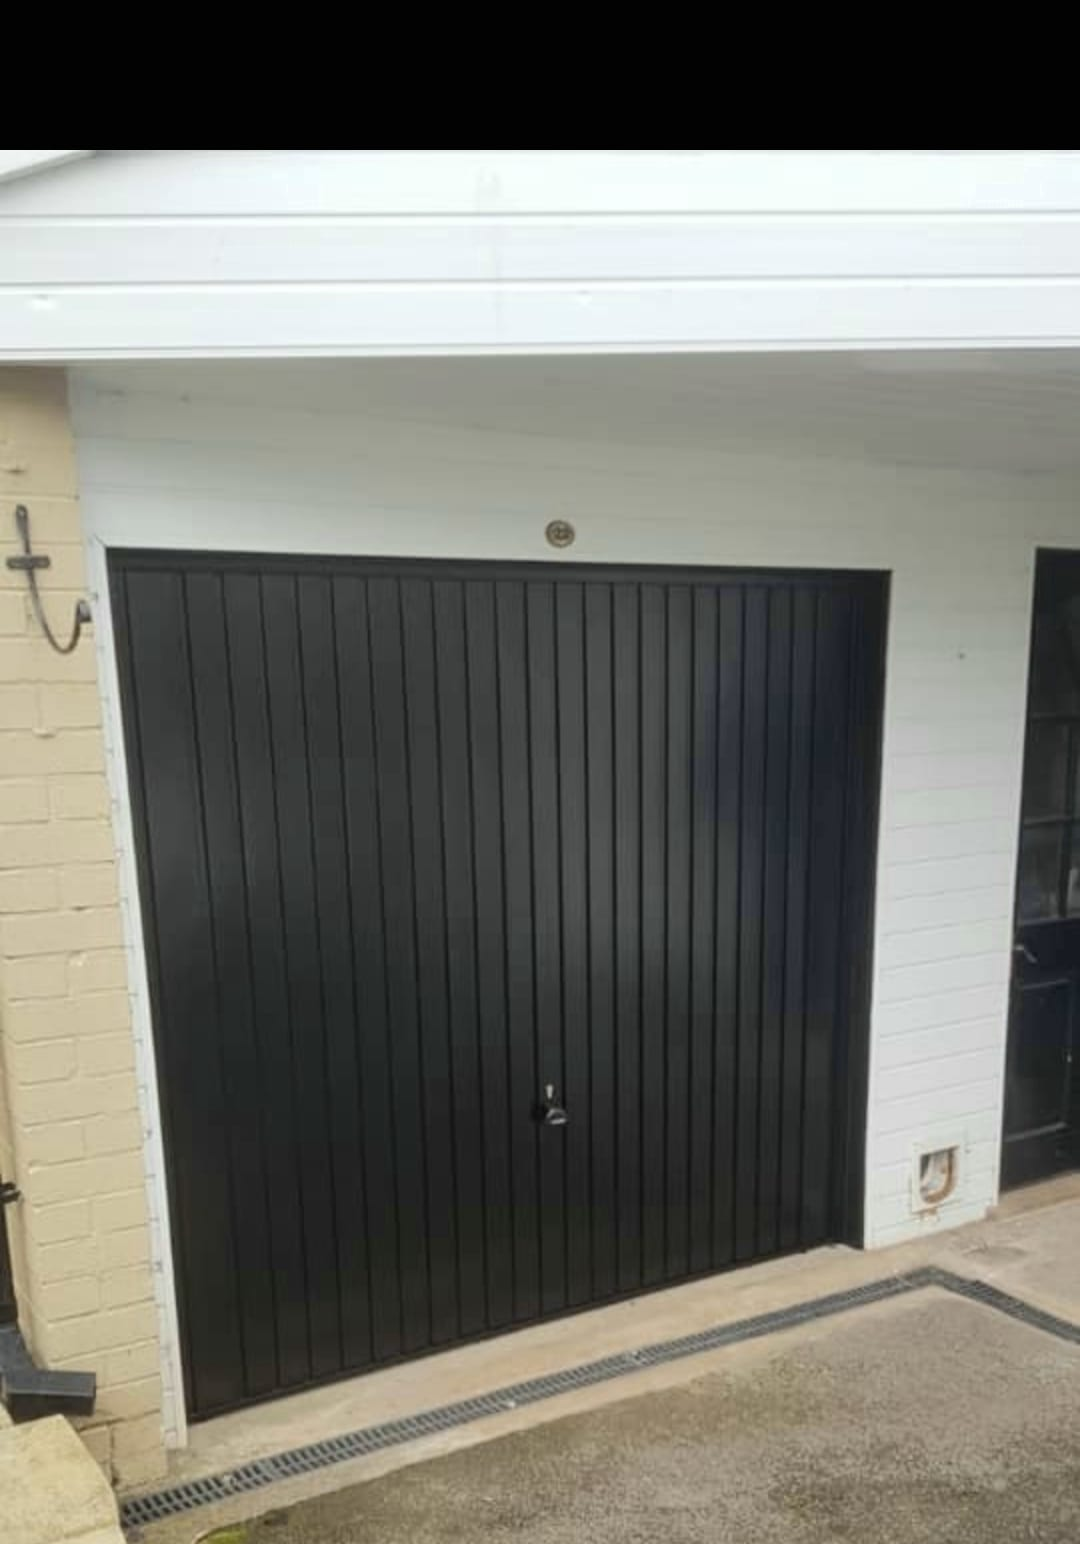 Garador canopy framed up and over garage door in the standard vertical ribbed design, powder coated black with a matching frame to finish.